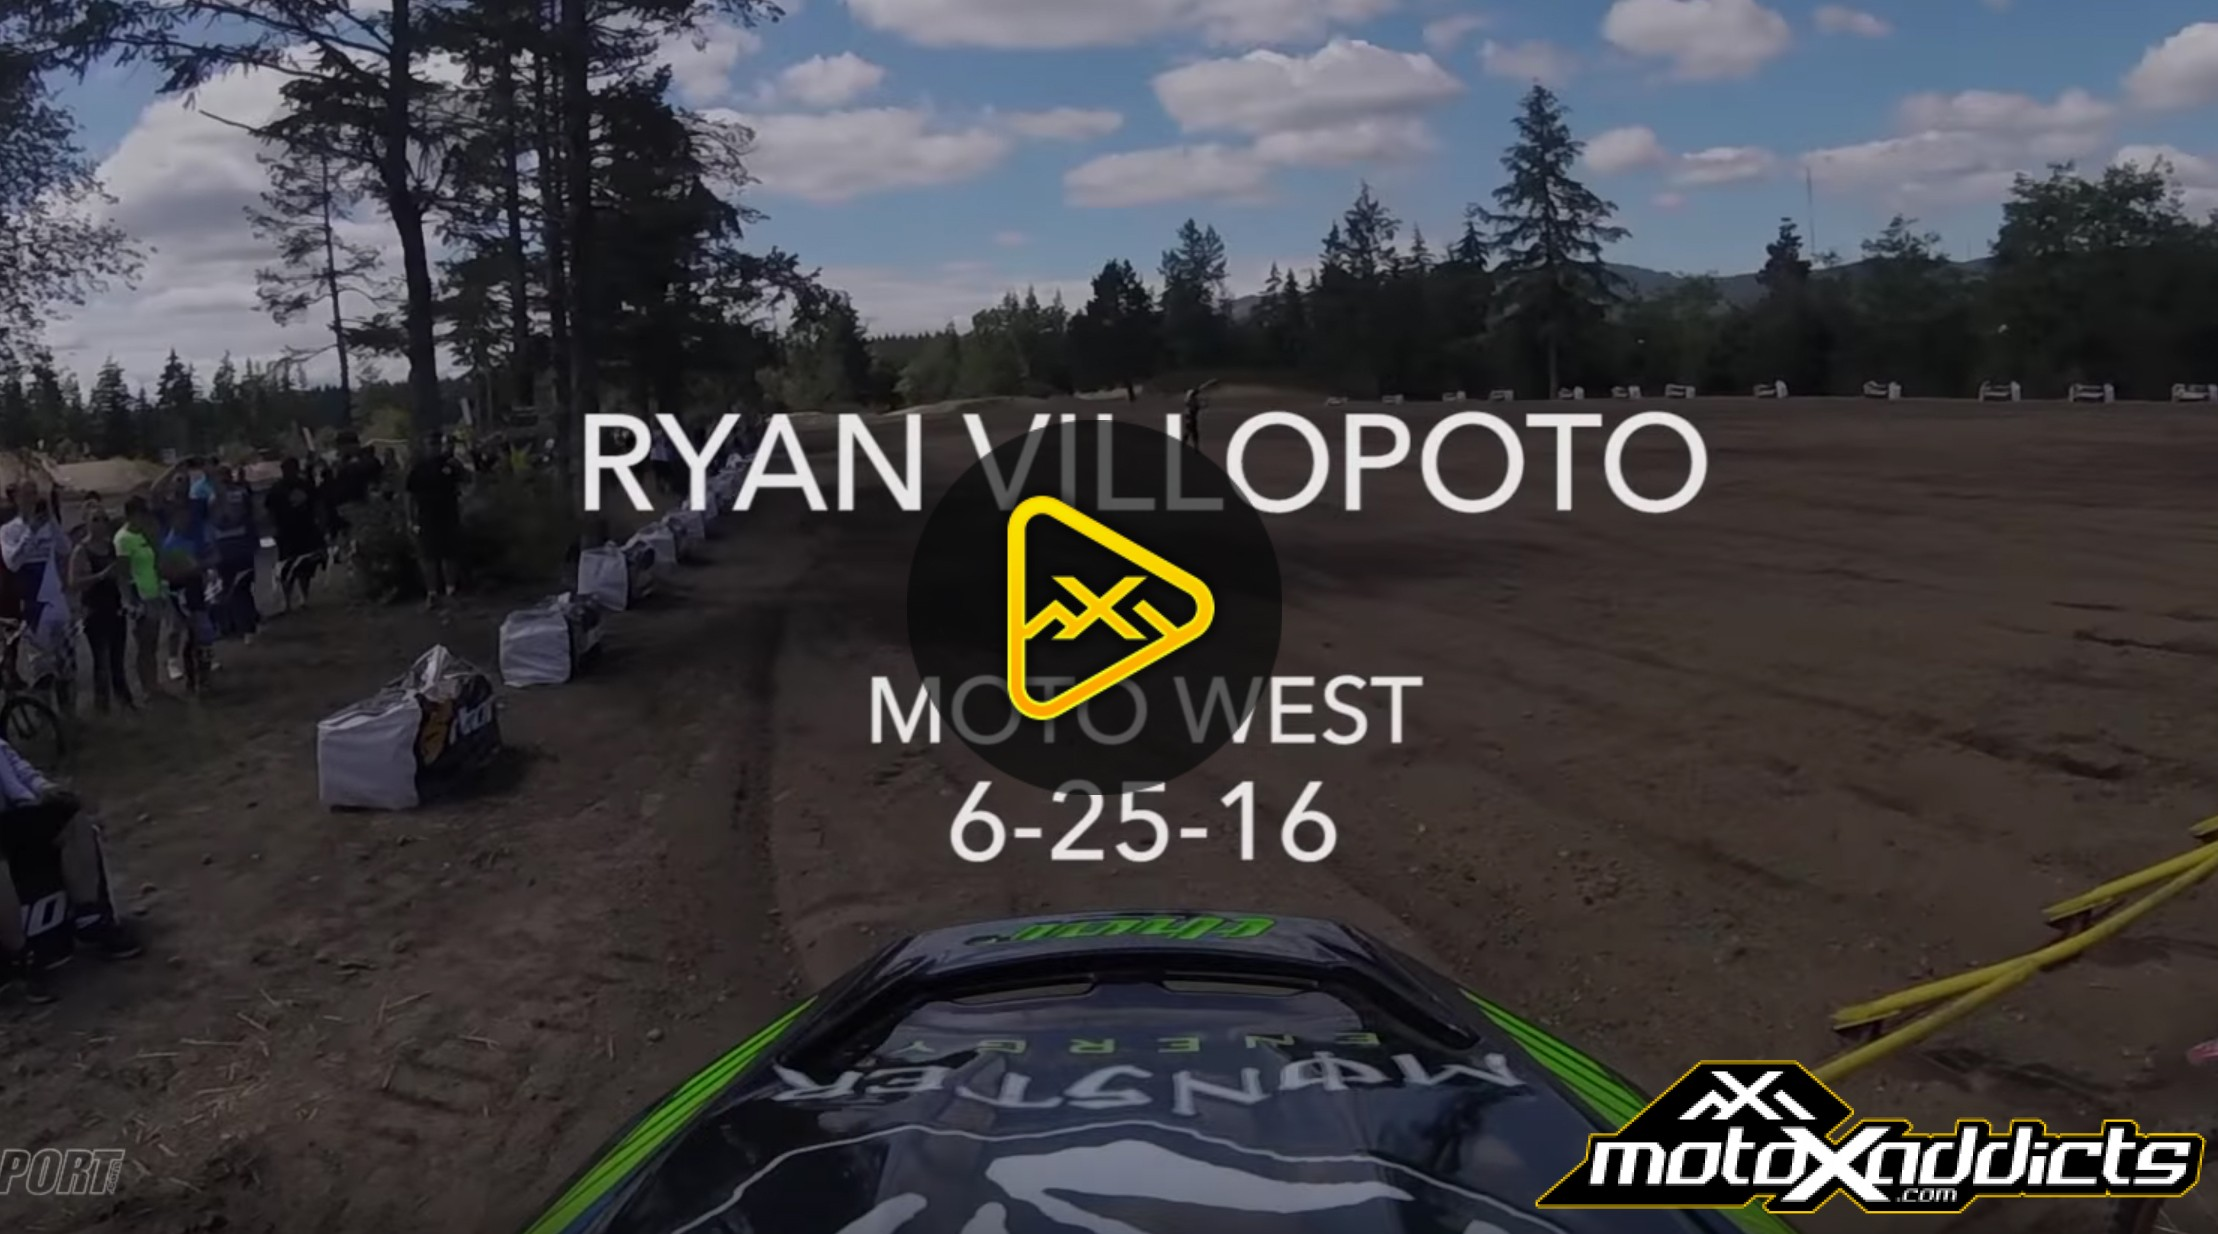 Helmet Cam: Ryan Villopoto Comes off the Couch for Northwest MX Series